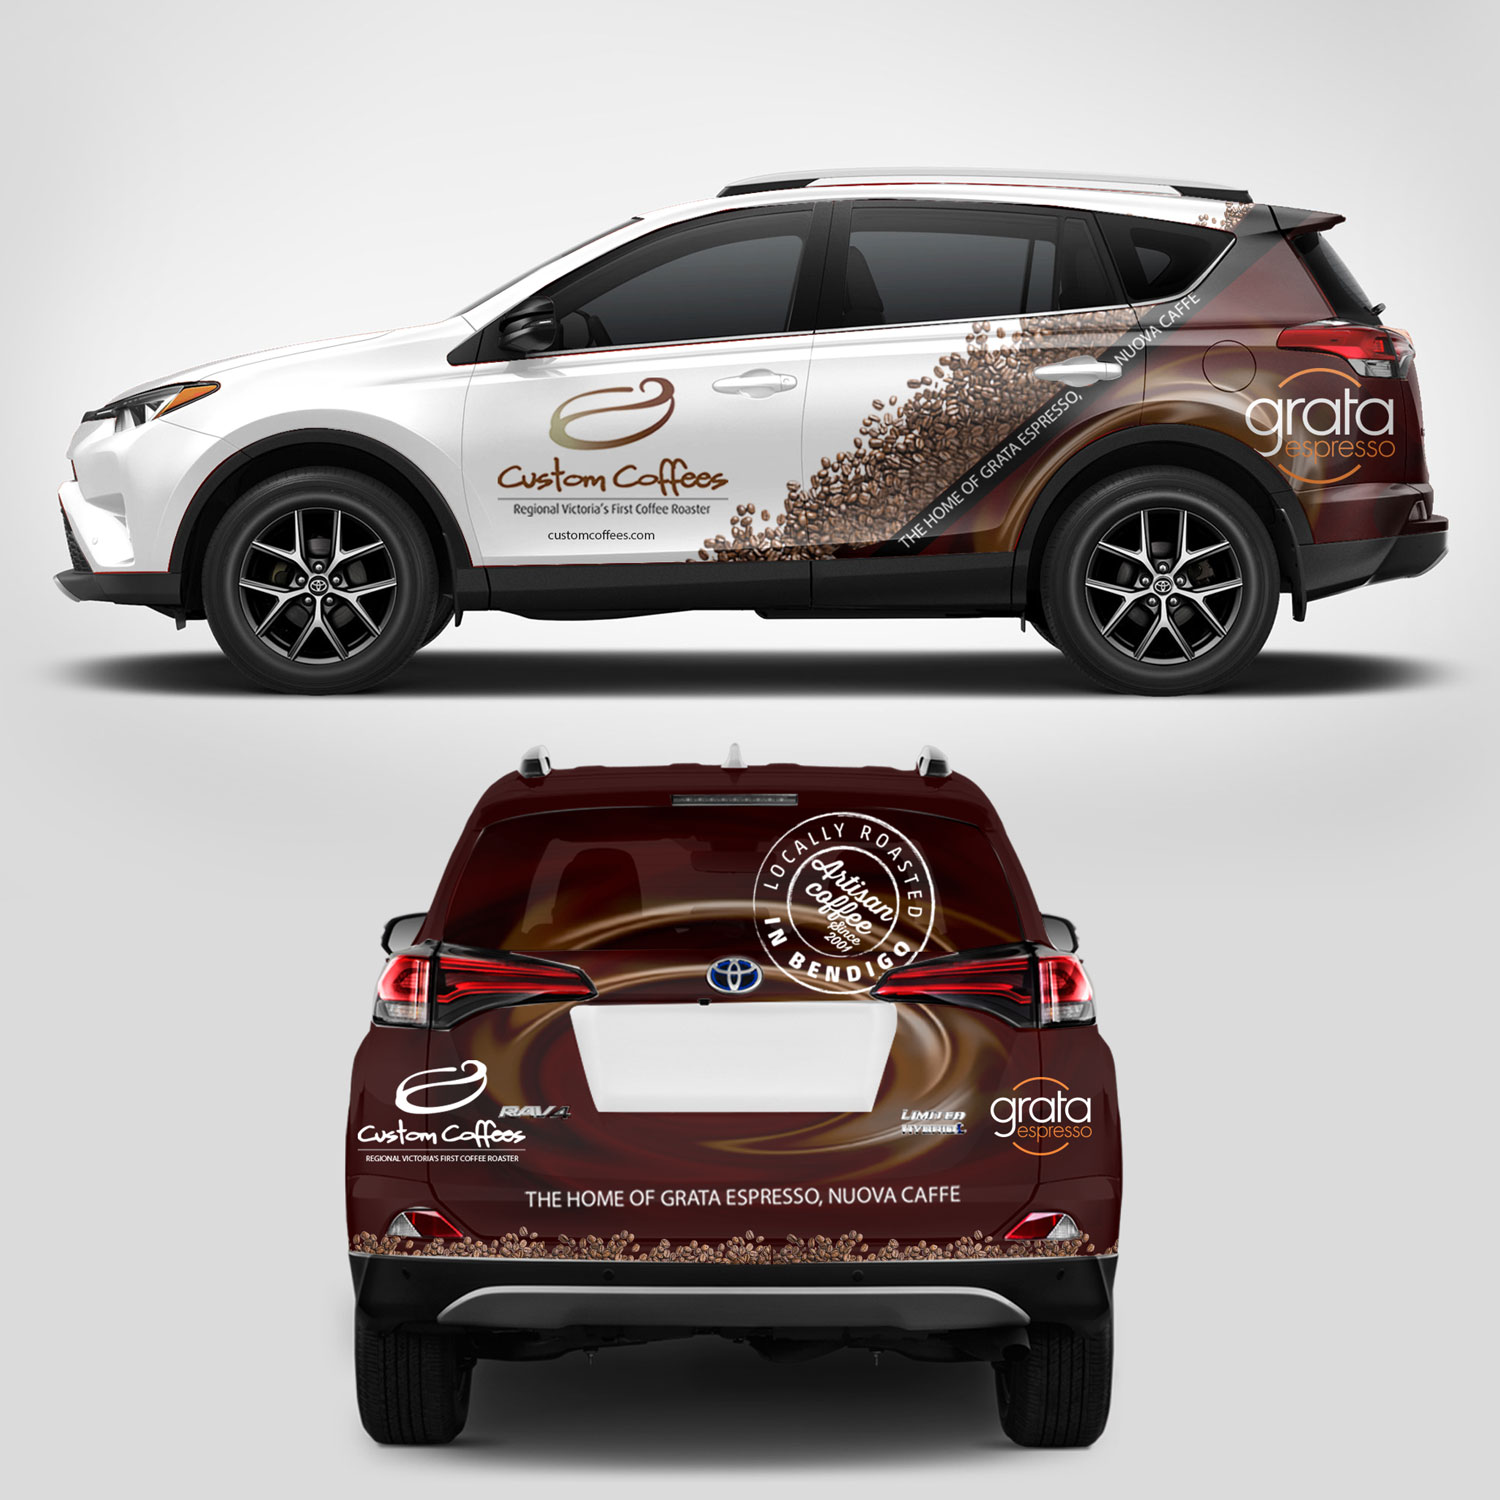 Elegant Serious Car Wrap Design For A Company By Hdcreation